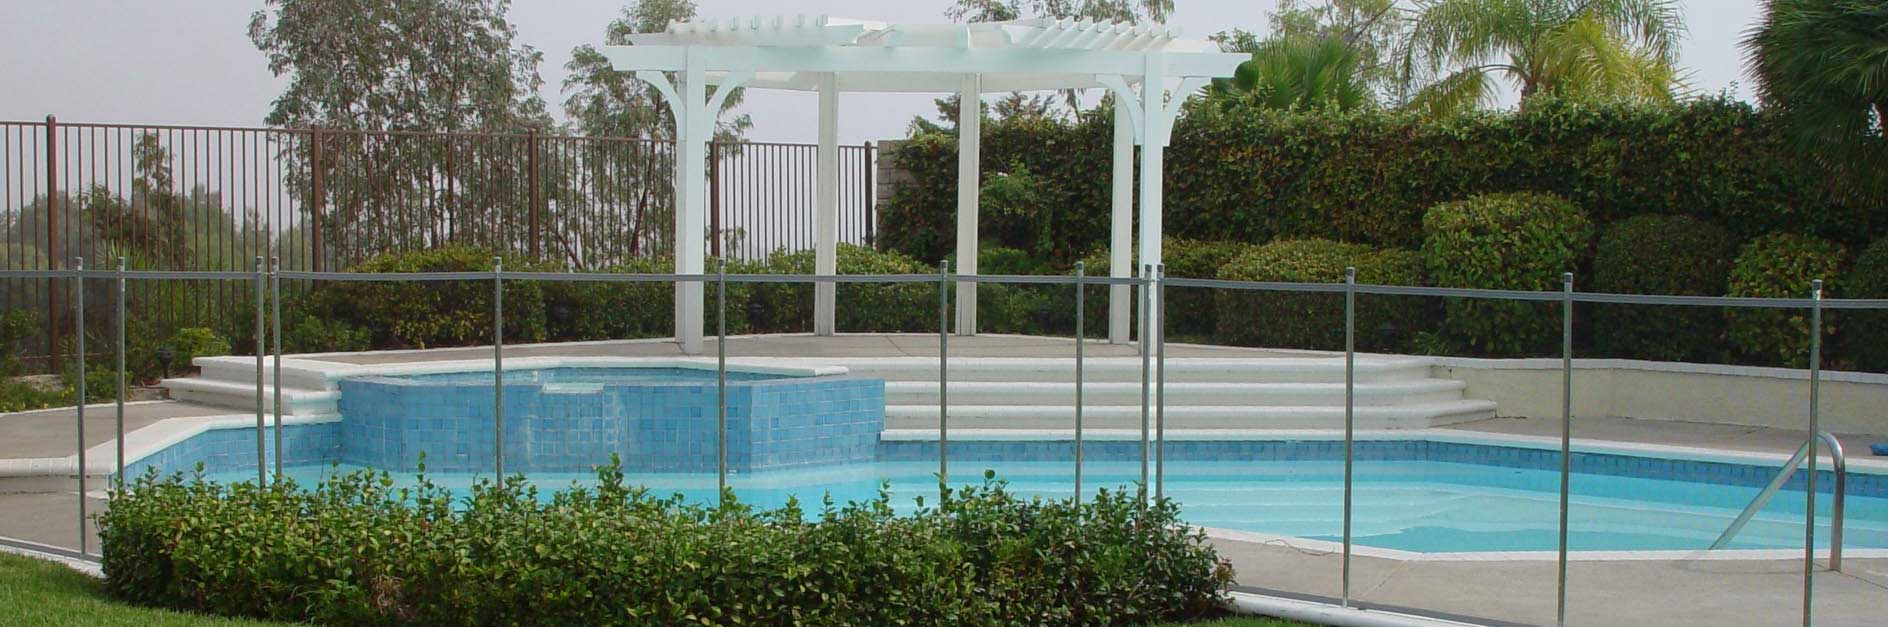 Swimming Pool Fence Why You Need One